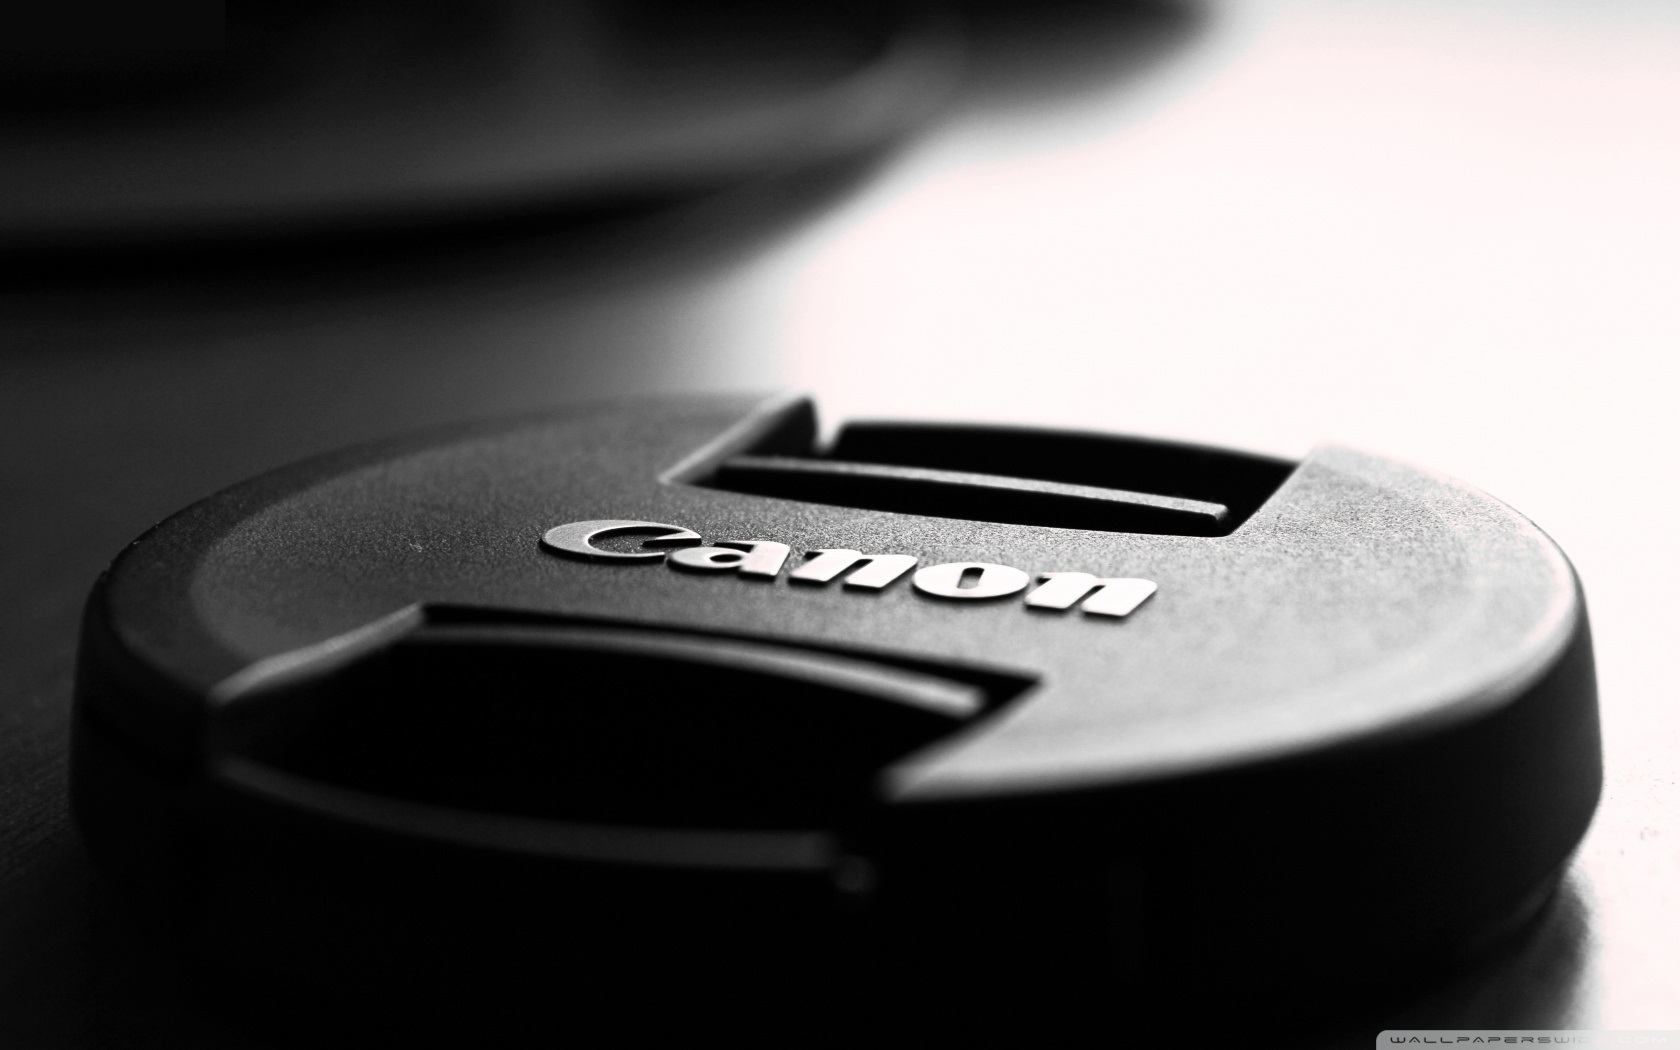 Canon Hd Wallpaper Wallpapersafari